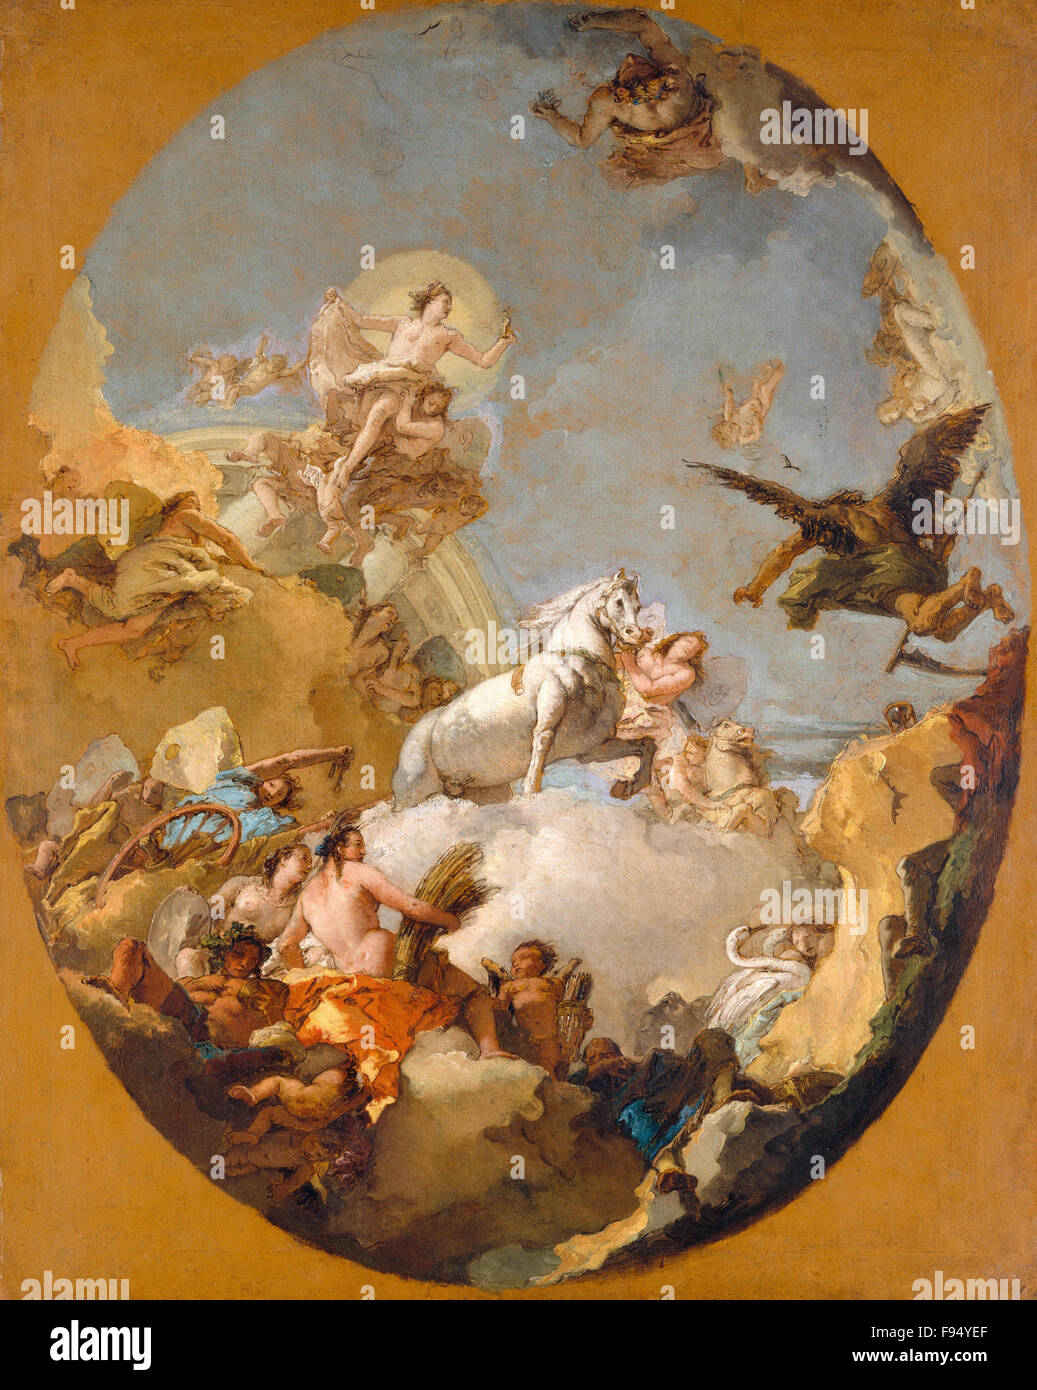 Giovanni Battista Tiepolo - The Chariot of Aurora - Stock Image